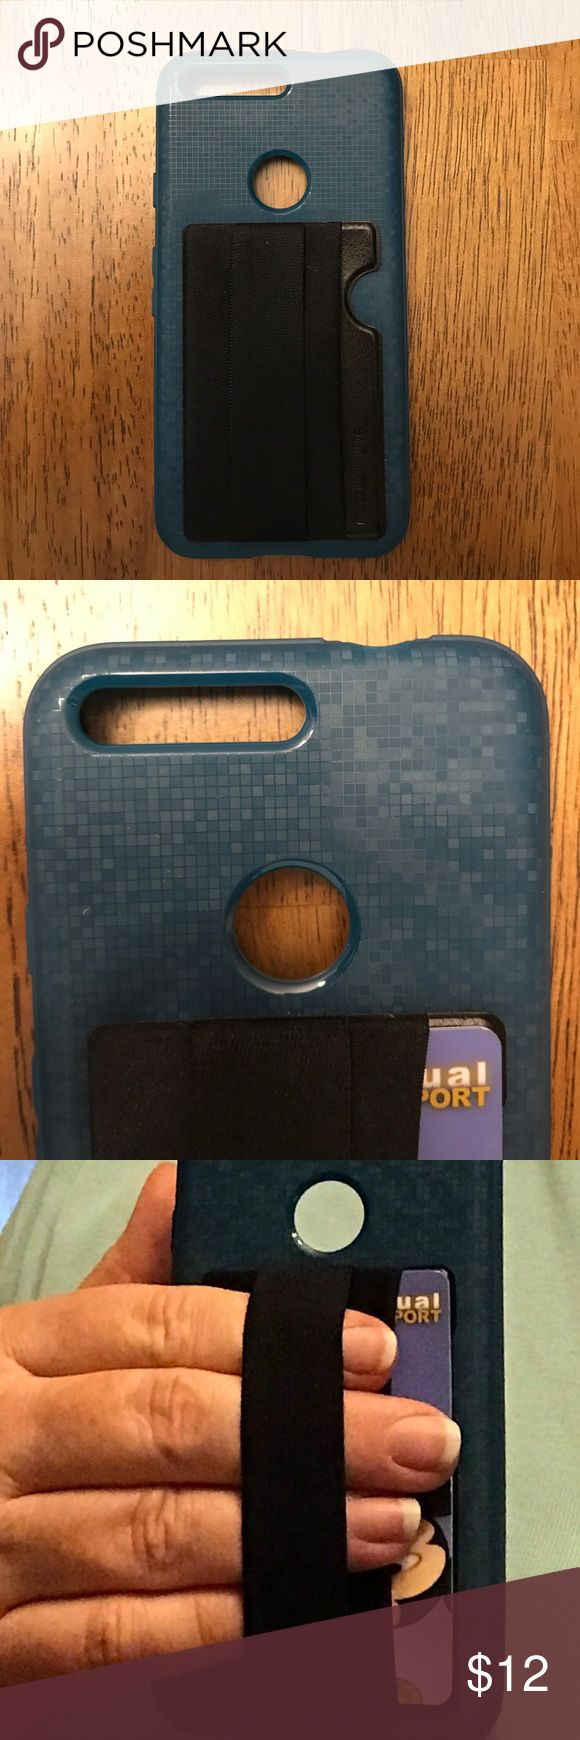 """Teal cell phone case for Google Pixel, nearly new. Teal TPU cell phone case for Google Pixel, nearly new. Used for a week, then decided to switch phones. Has """"lay-on-the-table"""" design that helps protect display from damage. Has a cool pixel pattern. I attached a card holder with an elastic strap to put your fingers in. It is removable, and the company says it will leave no residue. Diztronic Accessories Phone Cases"""